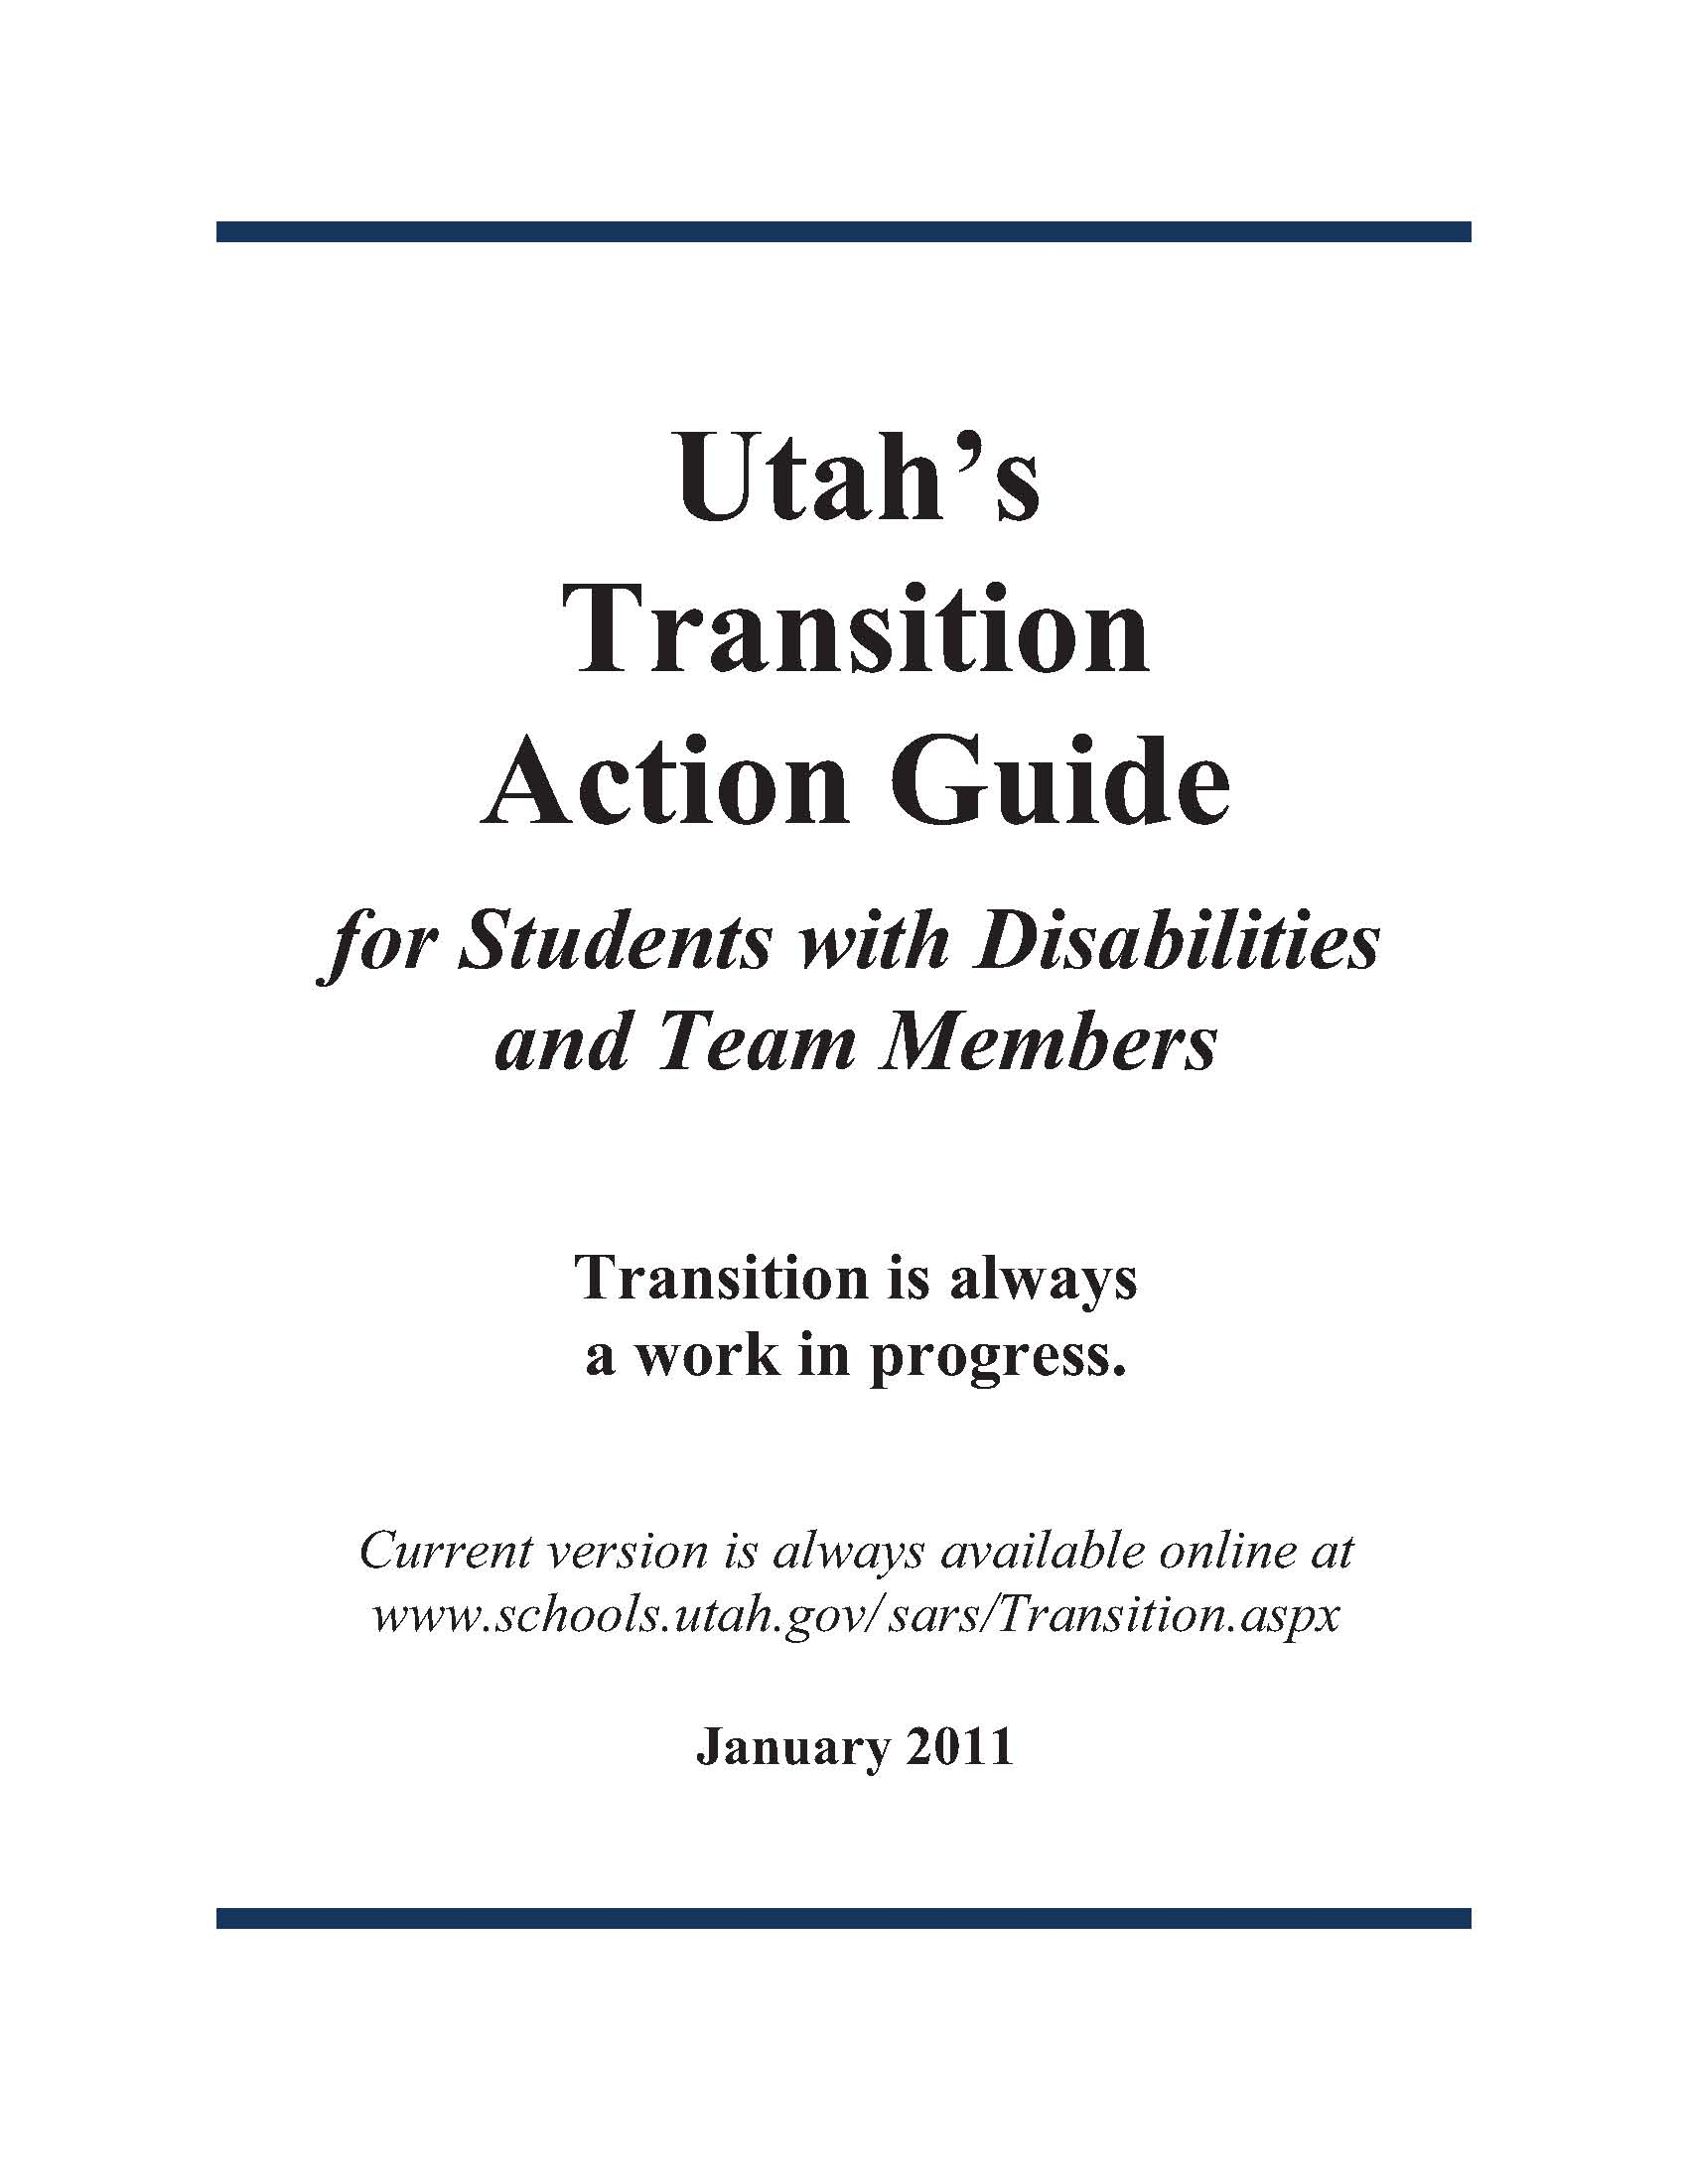 Utah's Transition Action Guide.